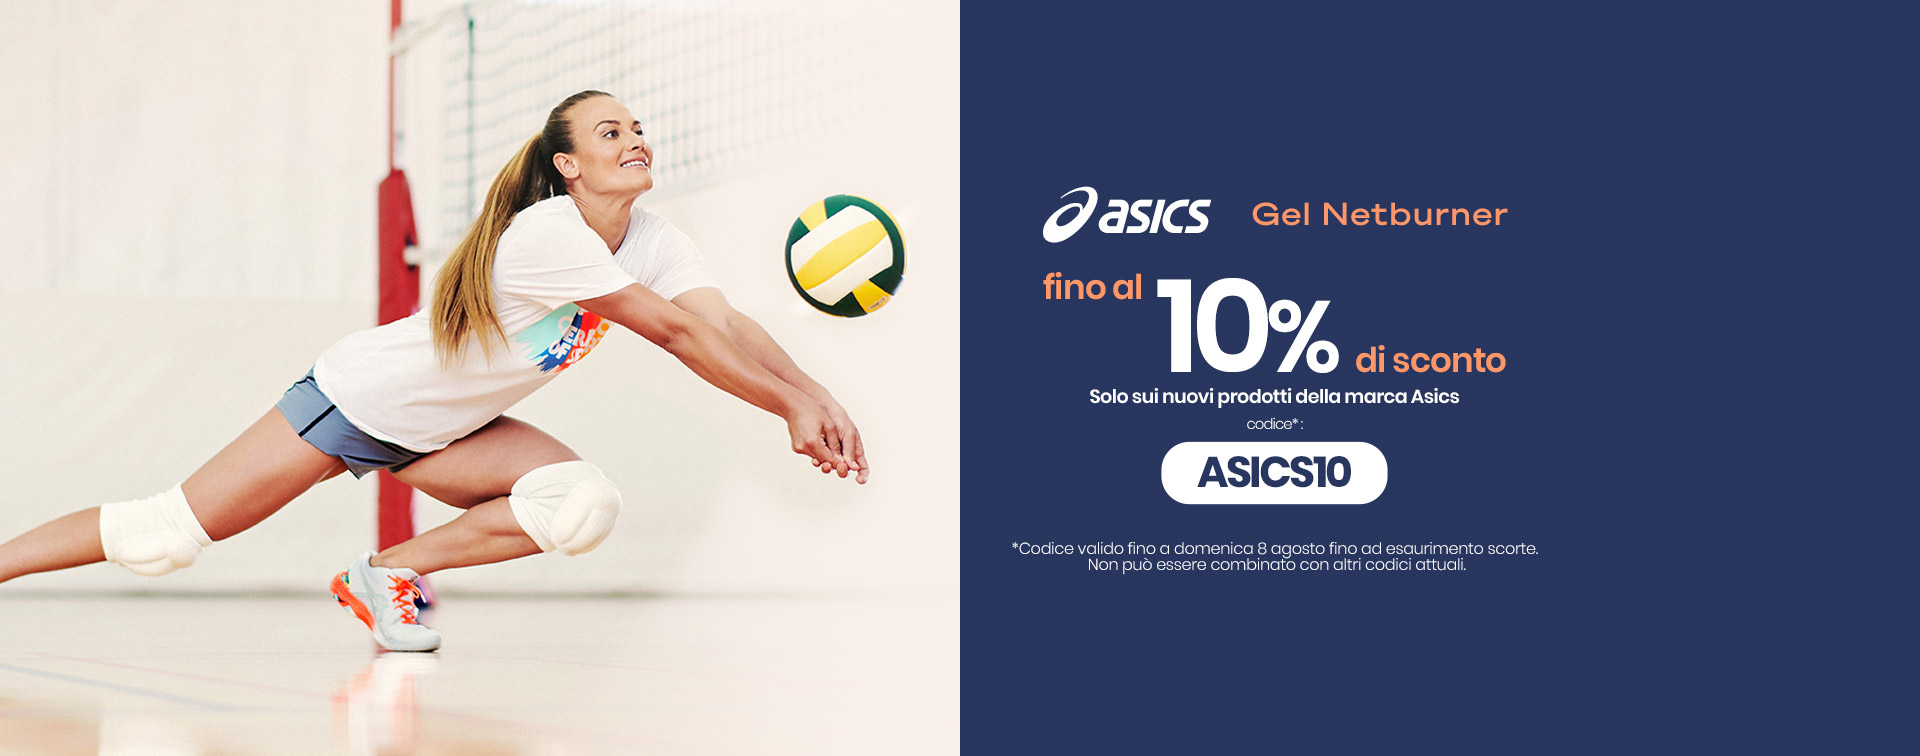 Asics - Top volleyball